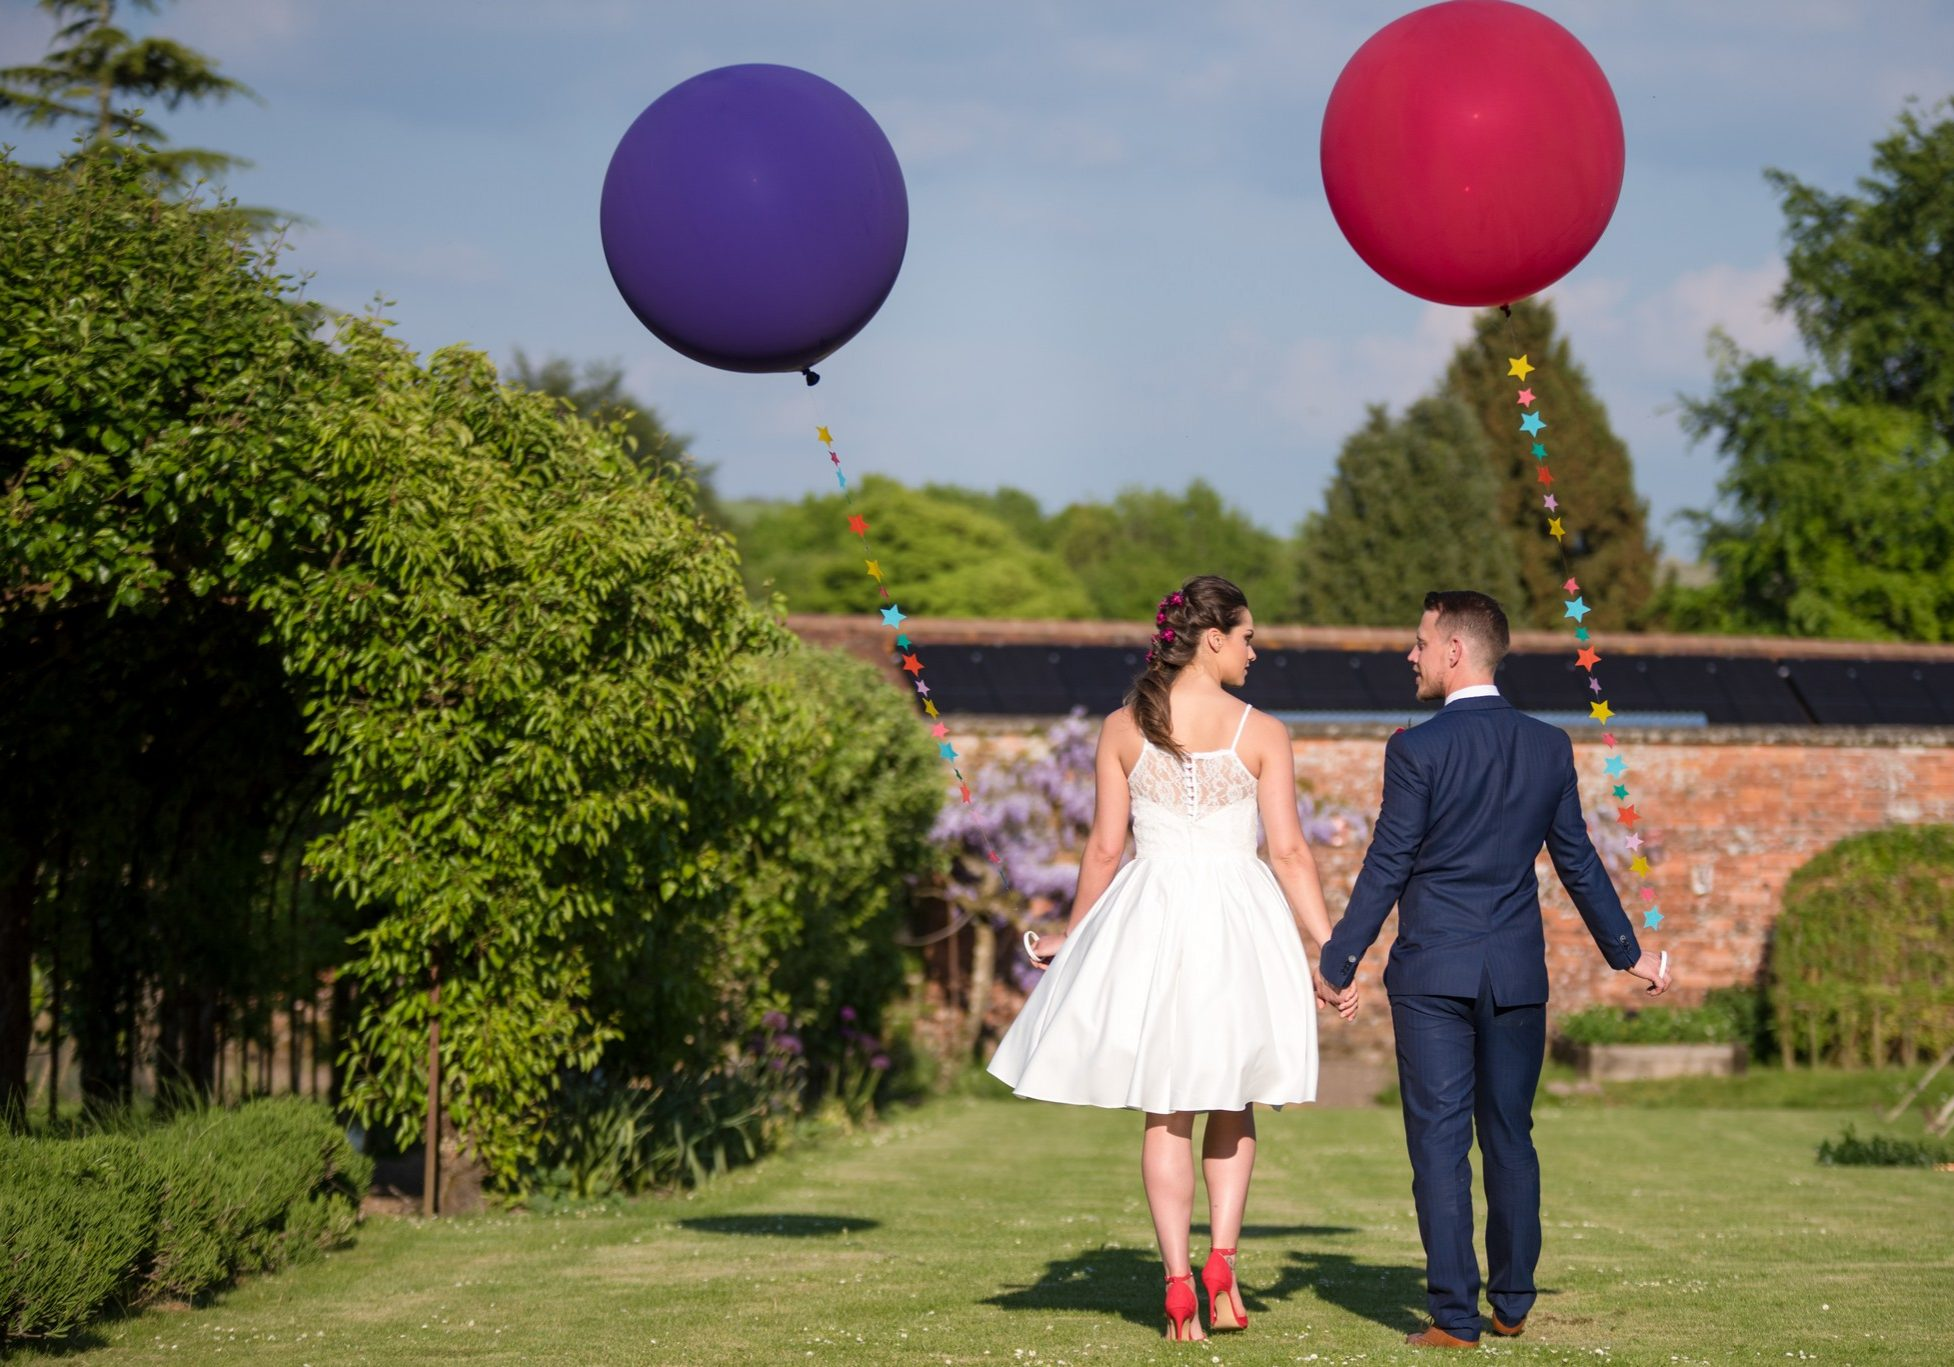 Bespoke & Beyond Weddings and Events